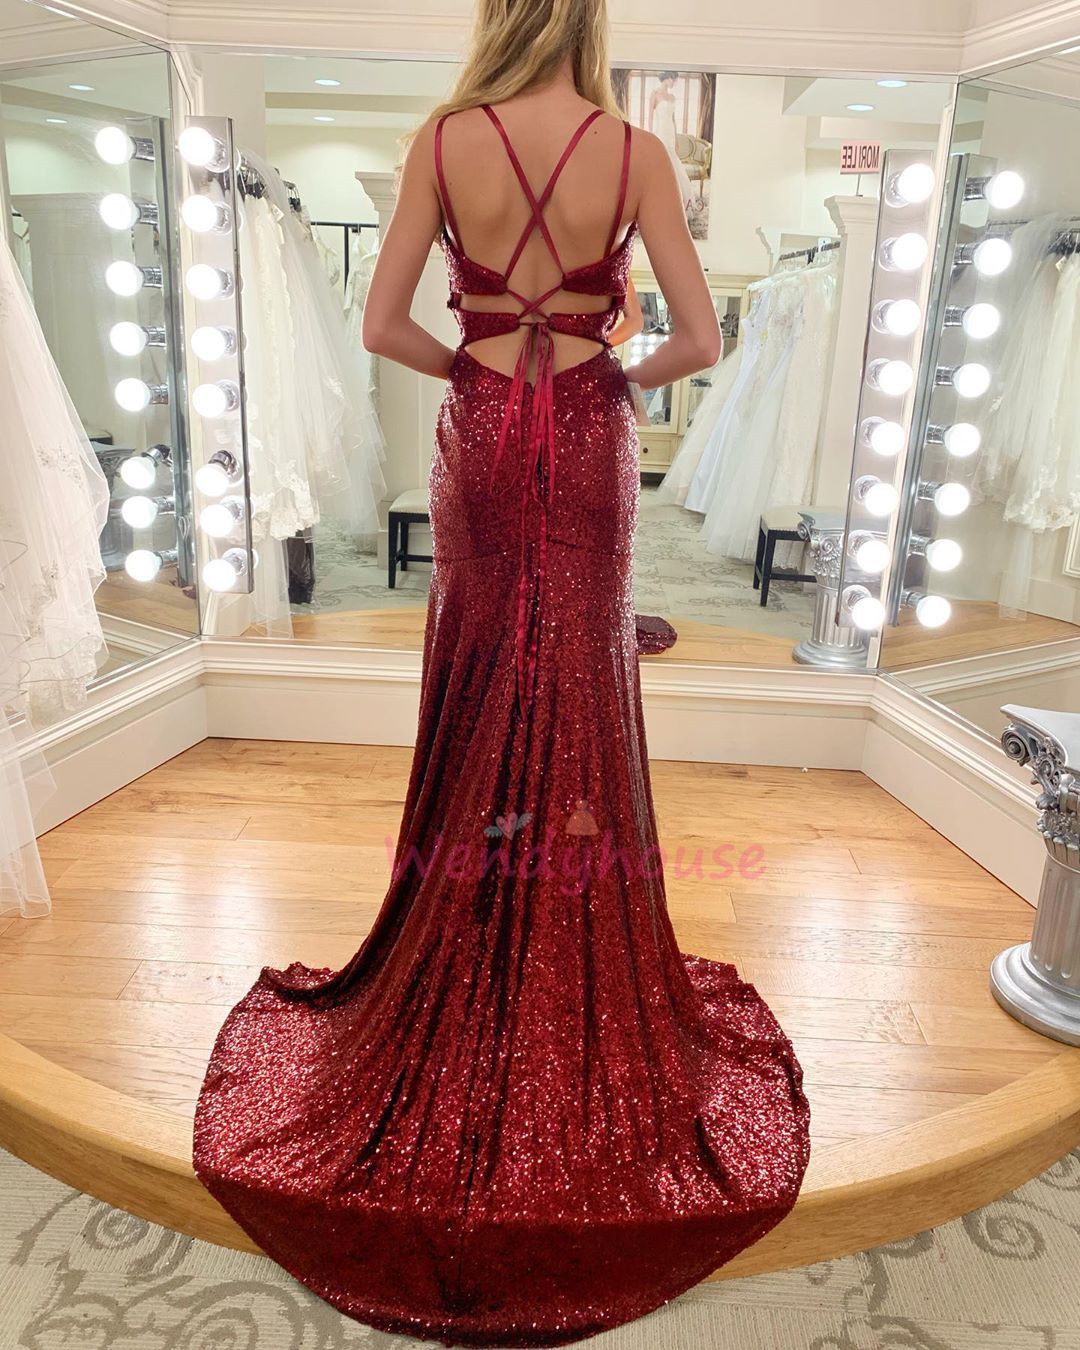 Gorgeous Wine Red Sequins Mermaid Formal Dress Burgundy Prom Dress Prom Dresses 2020 Burgundy Wine Colored Prom Dresses [ 1350 x 1080 Pixel ]